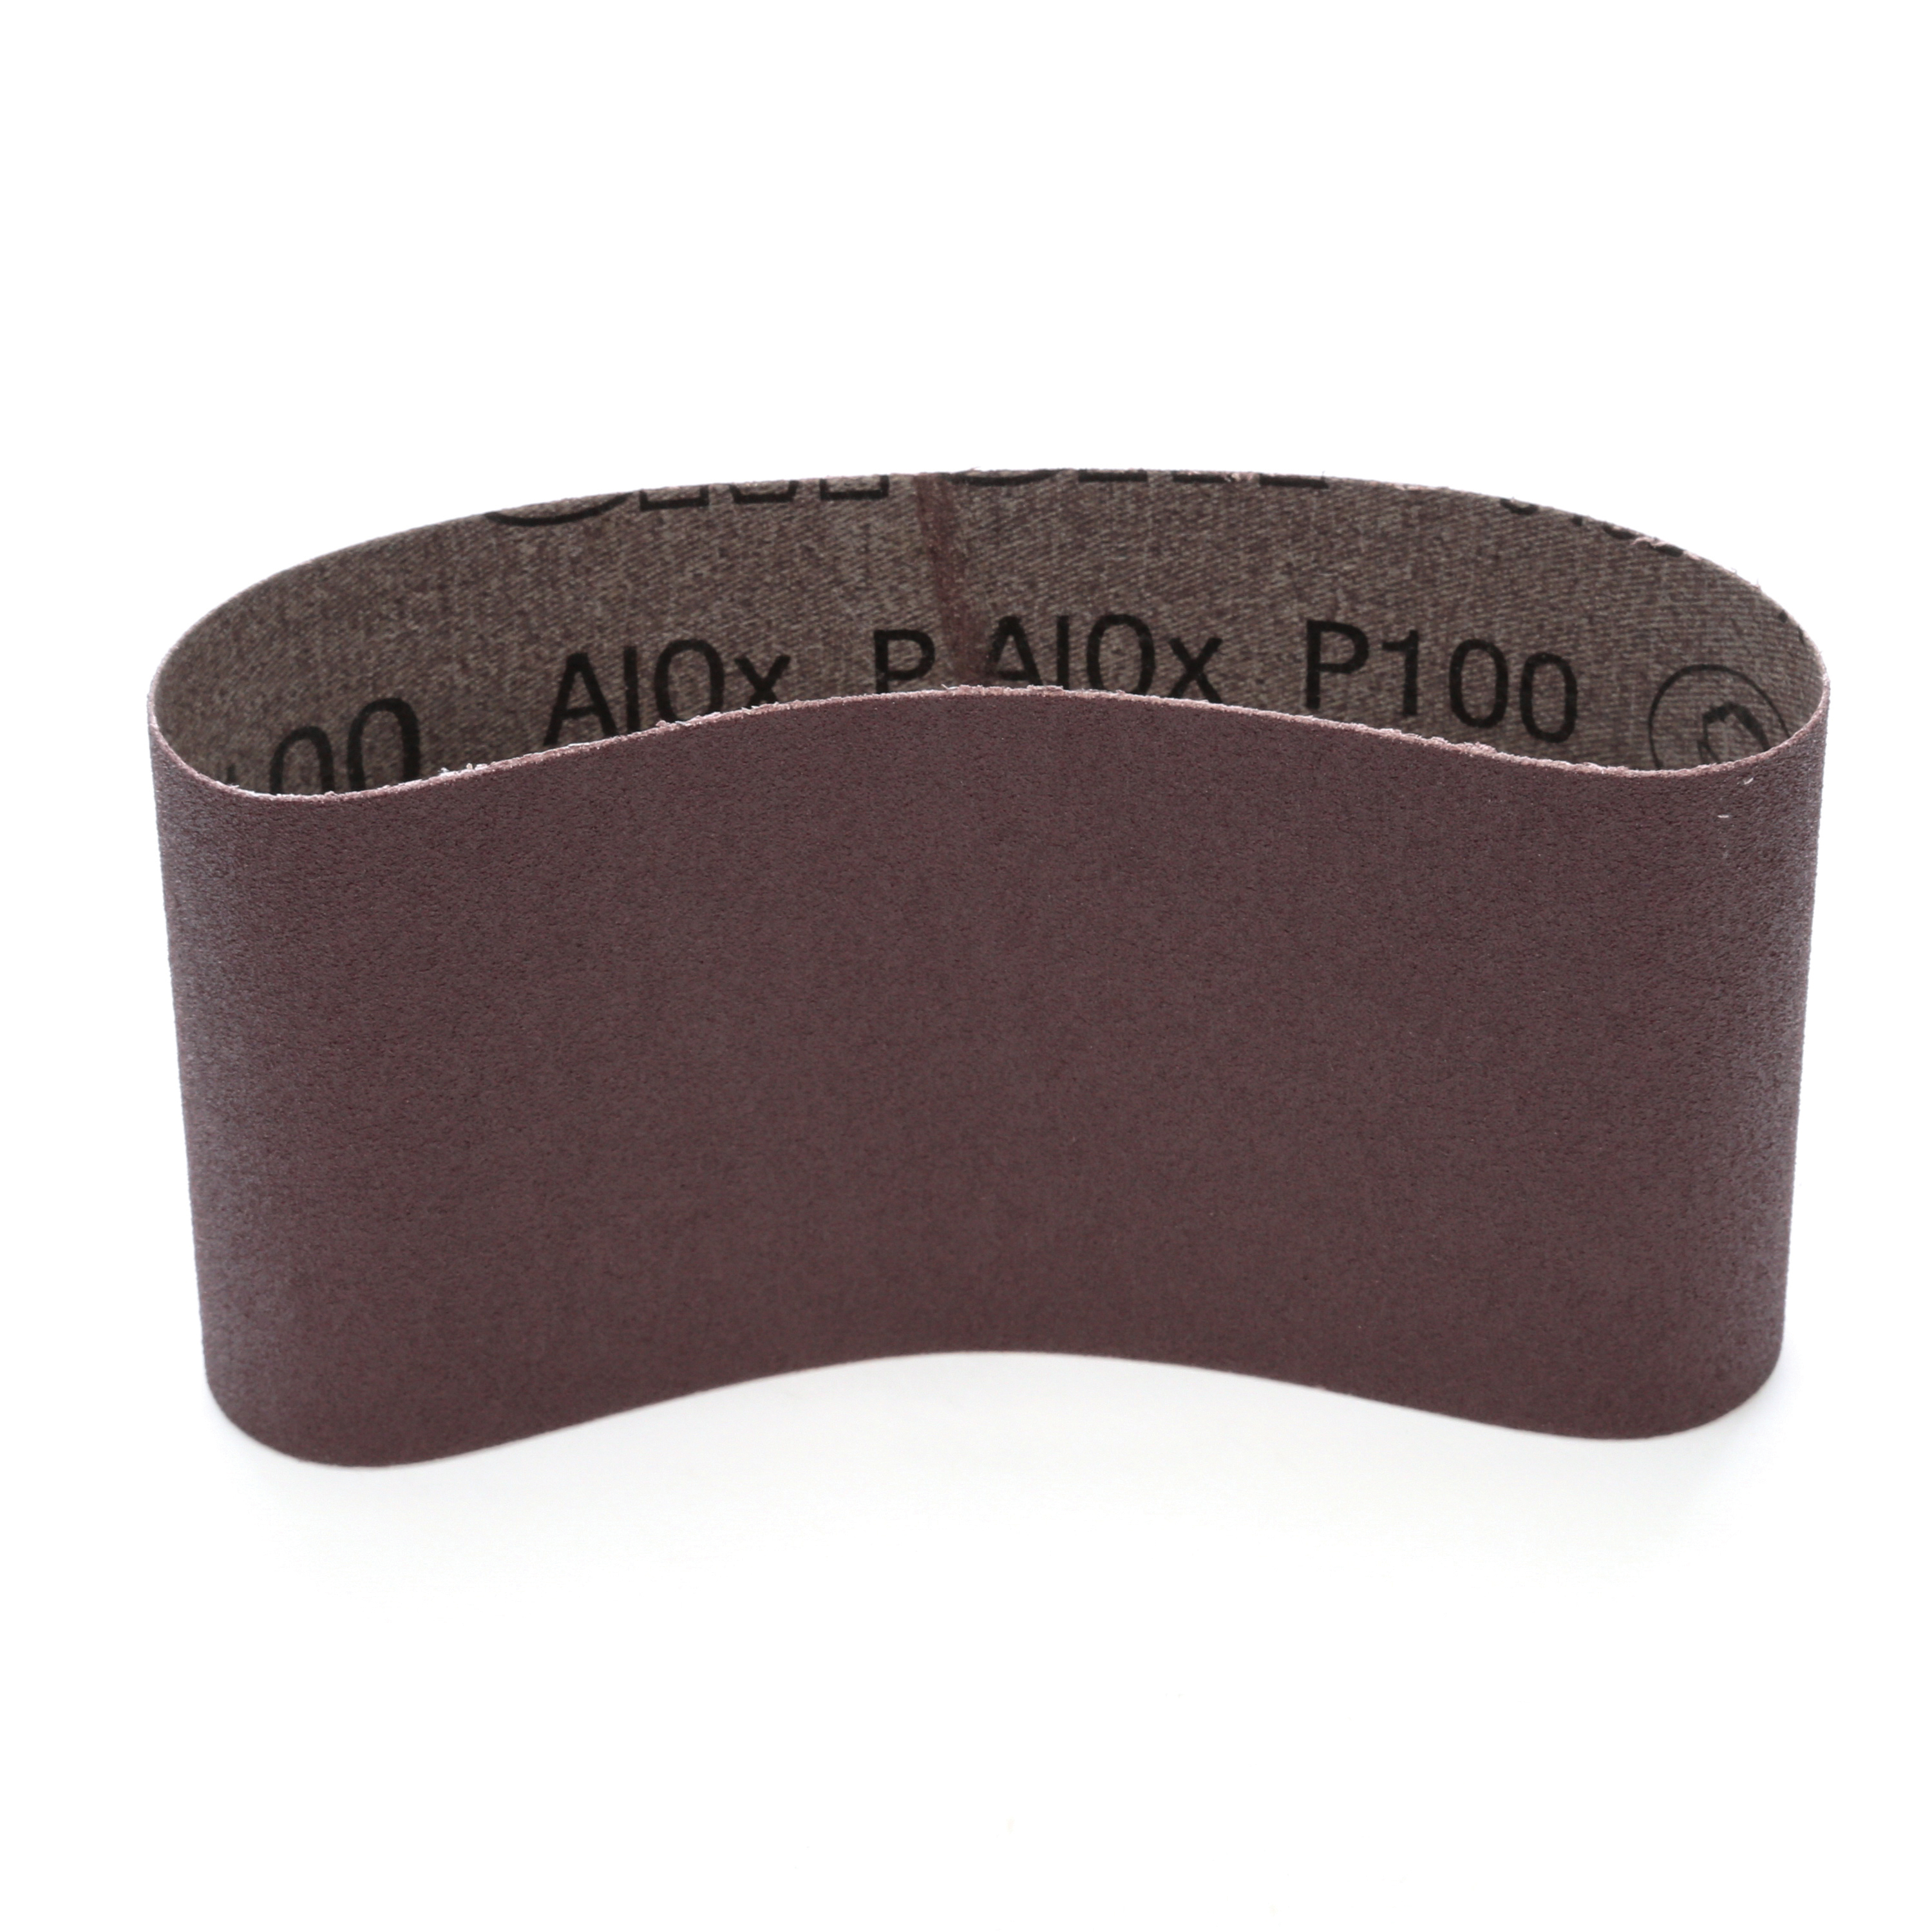 3M™ 051144-26853 341D Portable Abrasive Belt, 3-1/2 in W x 15-1/2 in L, P100 Grit, Fine Grade, Aluminum Oxide Abrasive, Cloth Backing